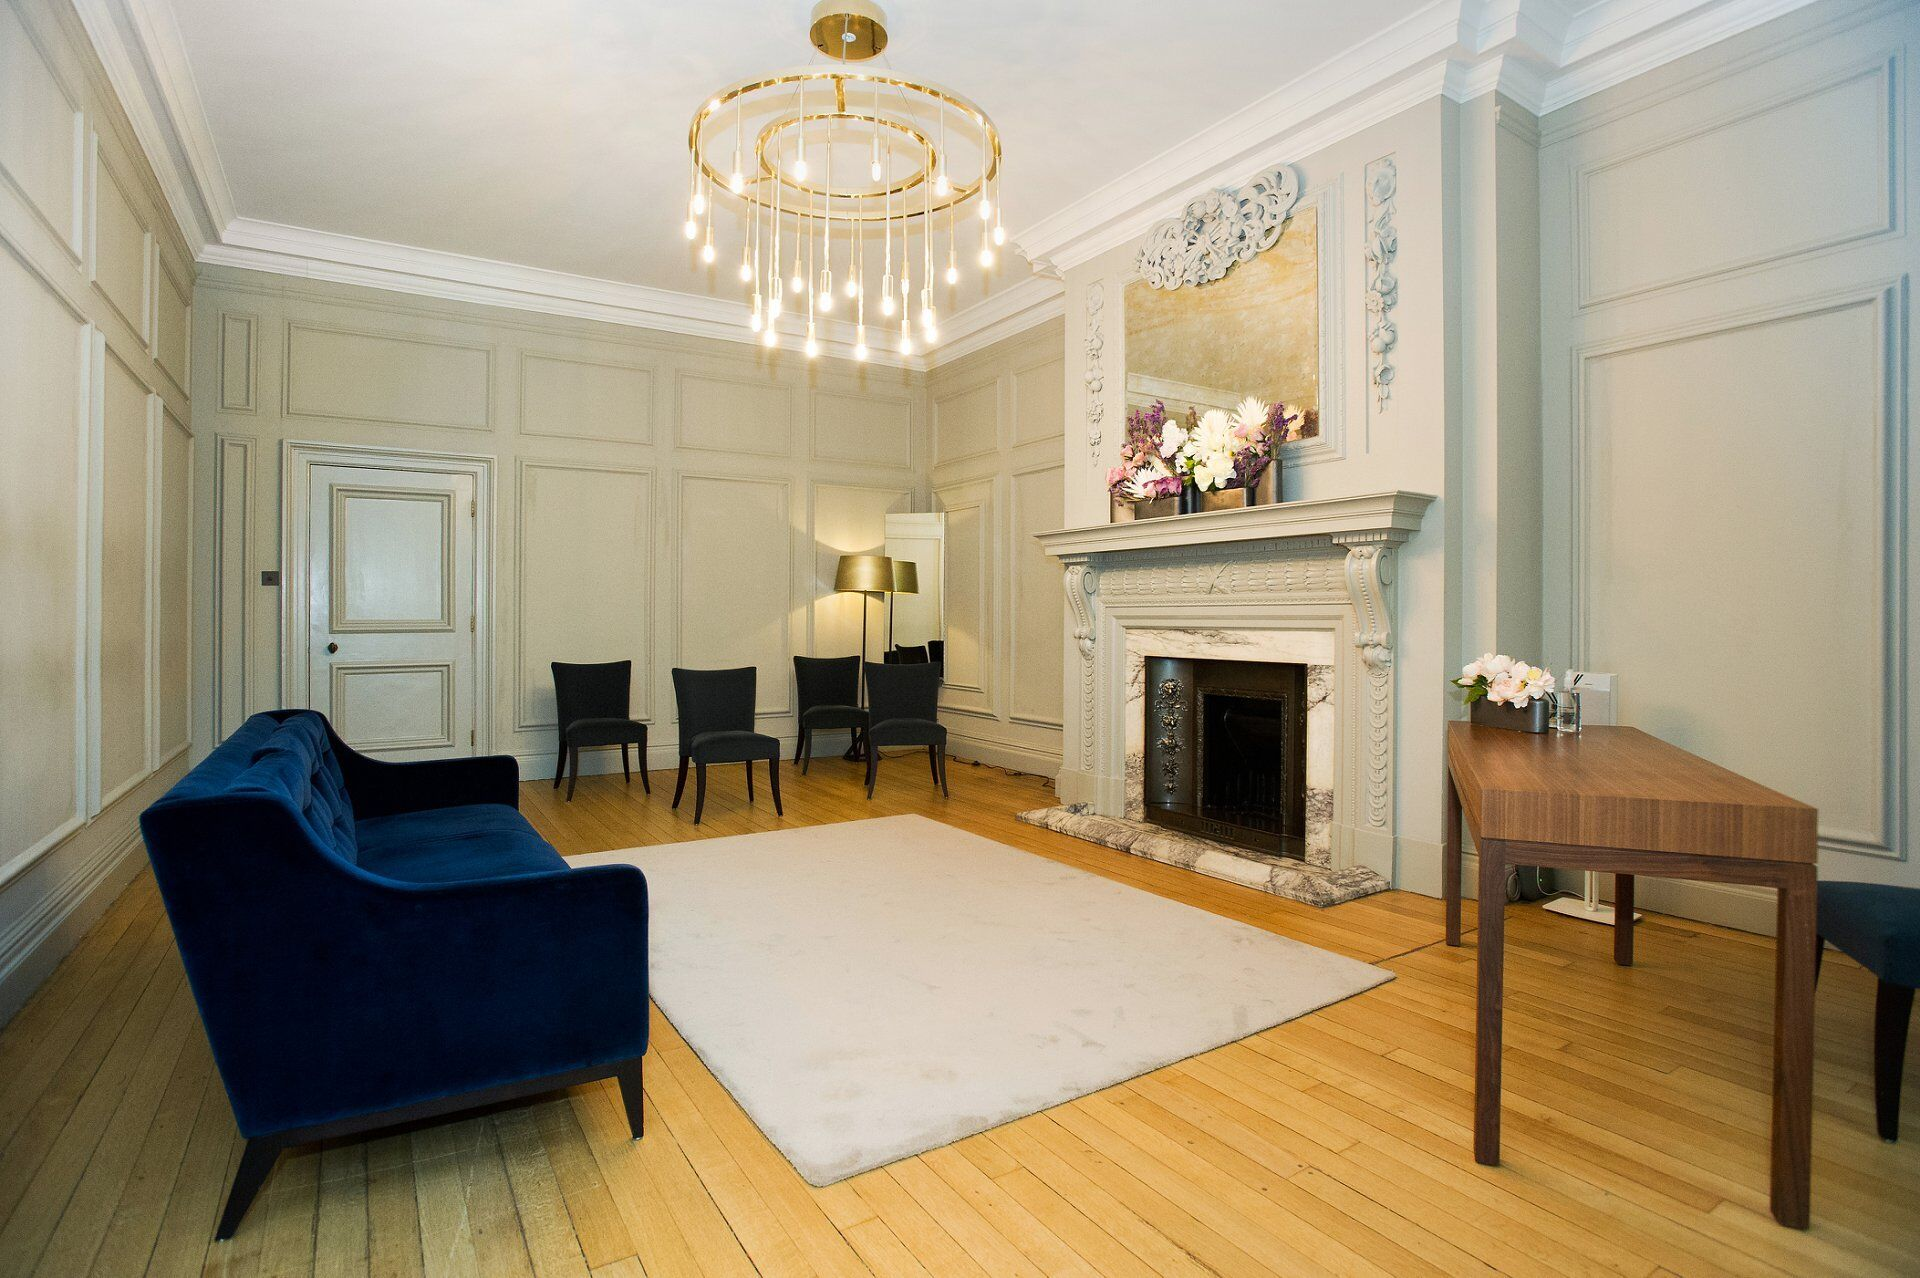 the soho room shows seating for 5 to 6 guests with the couple stood in front of the fireplace